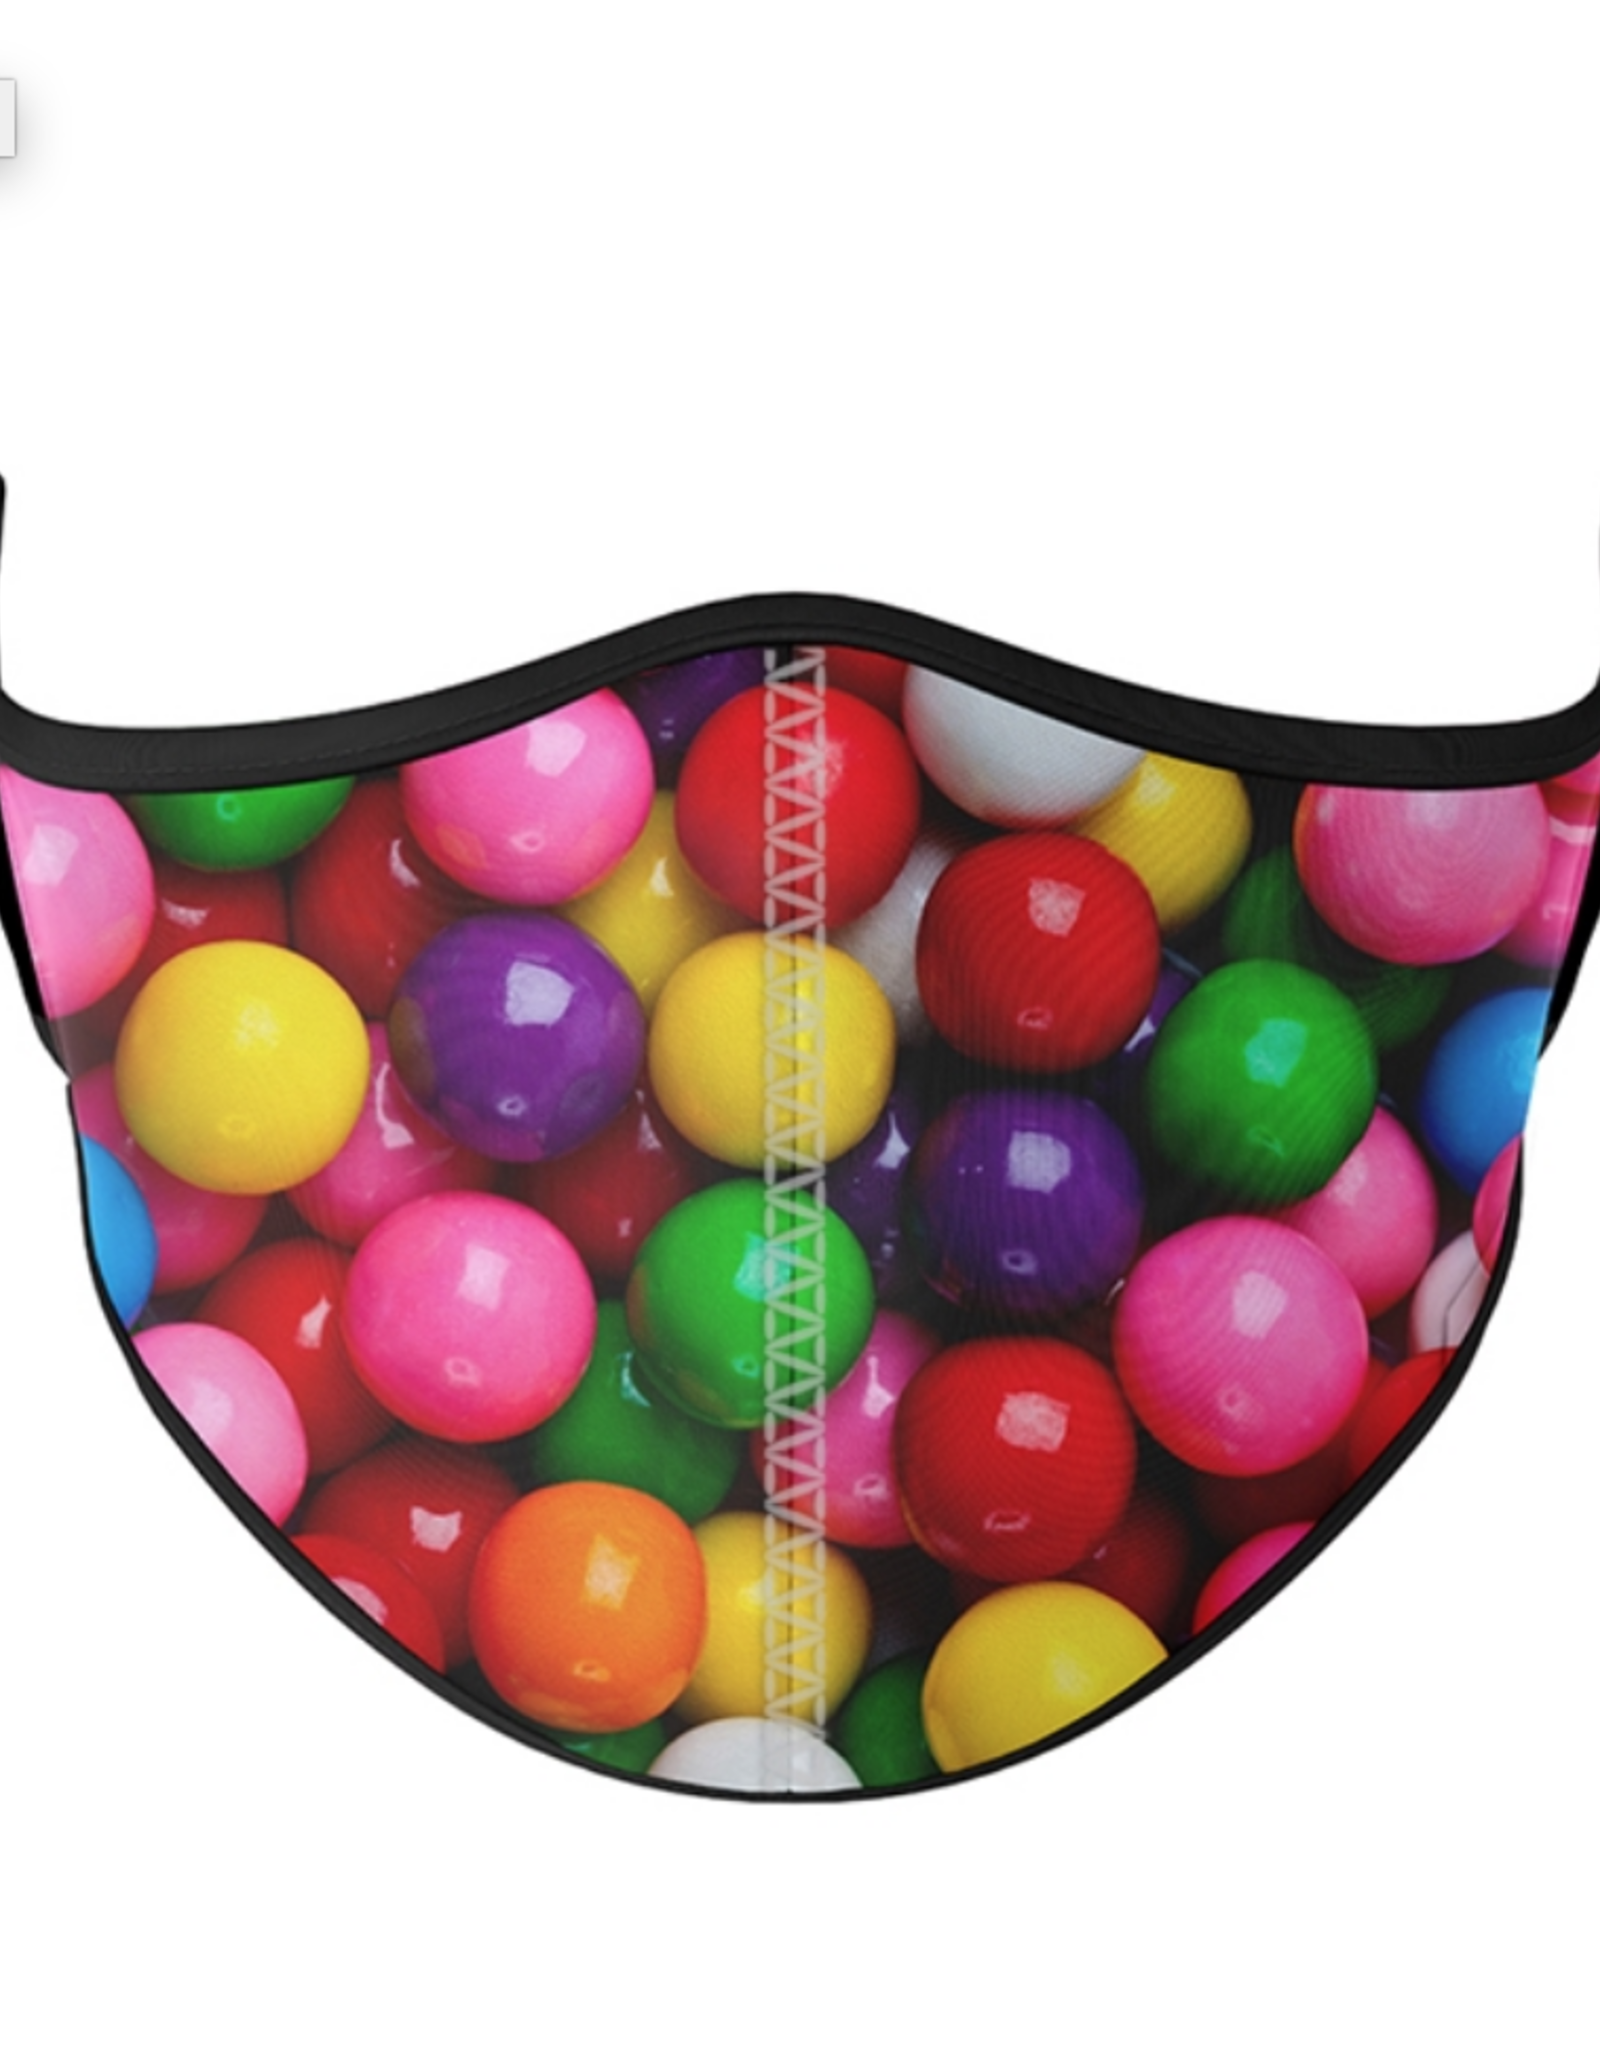 Top Trenz Top Trenz - Small Size - Gumball Mask